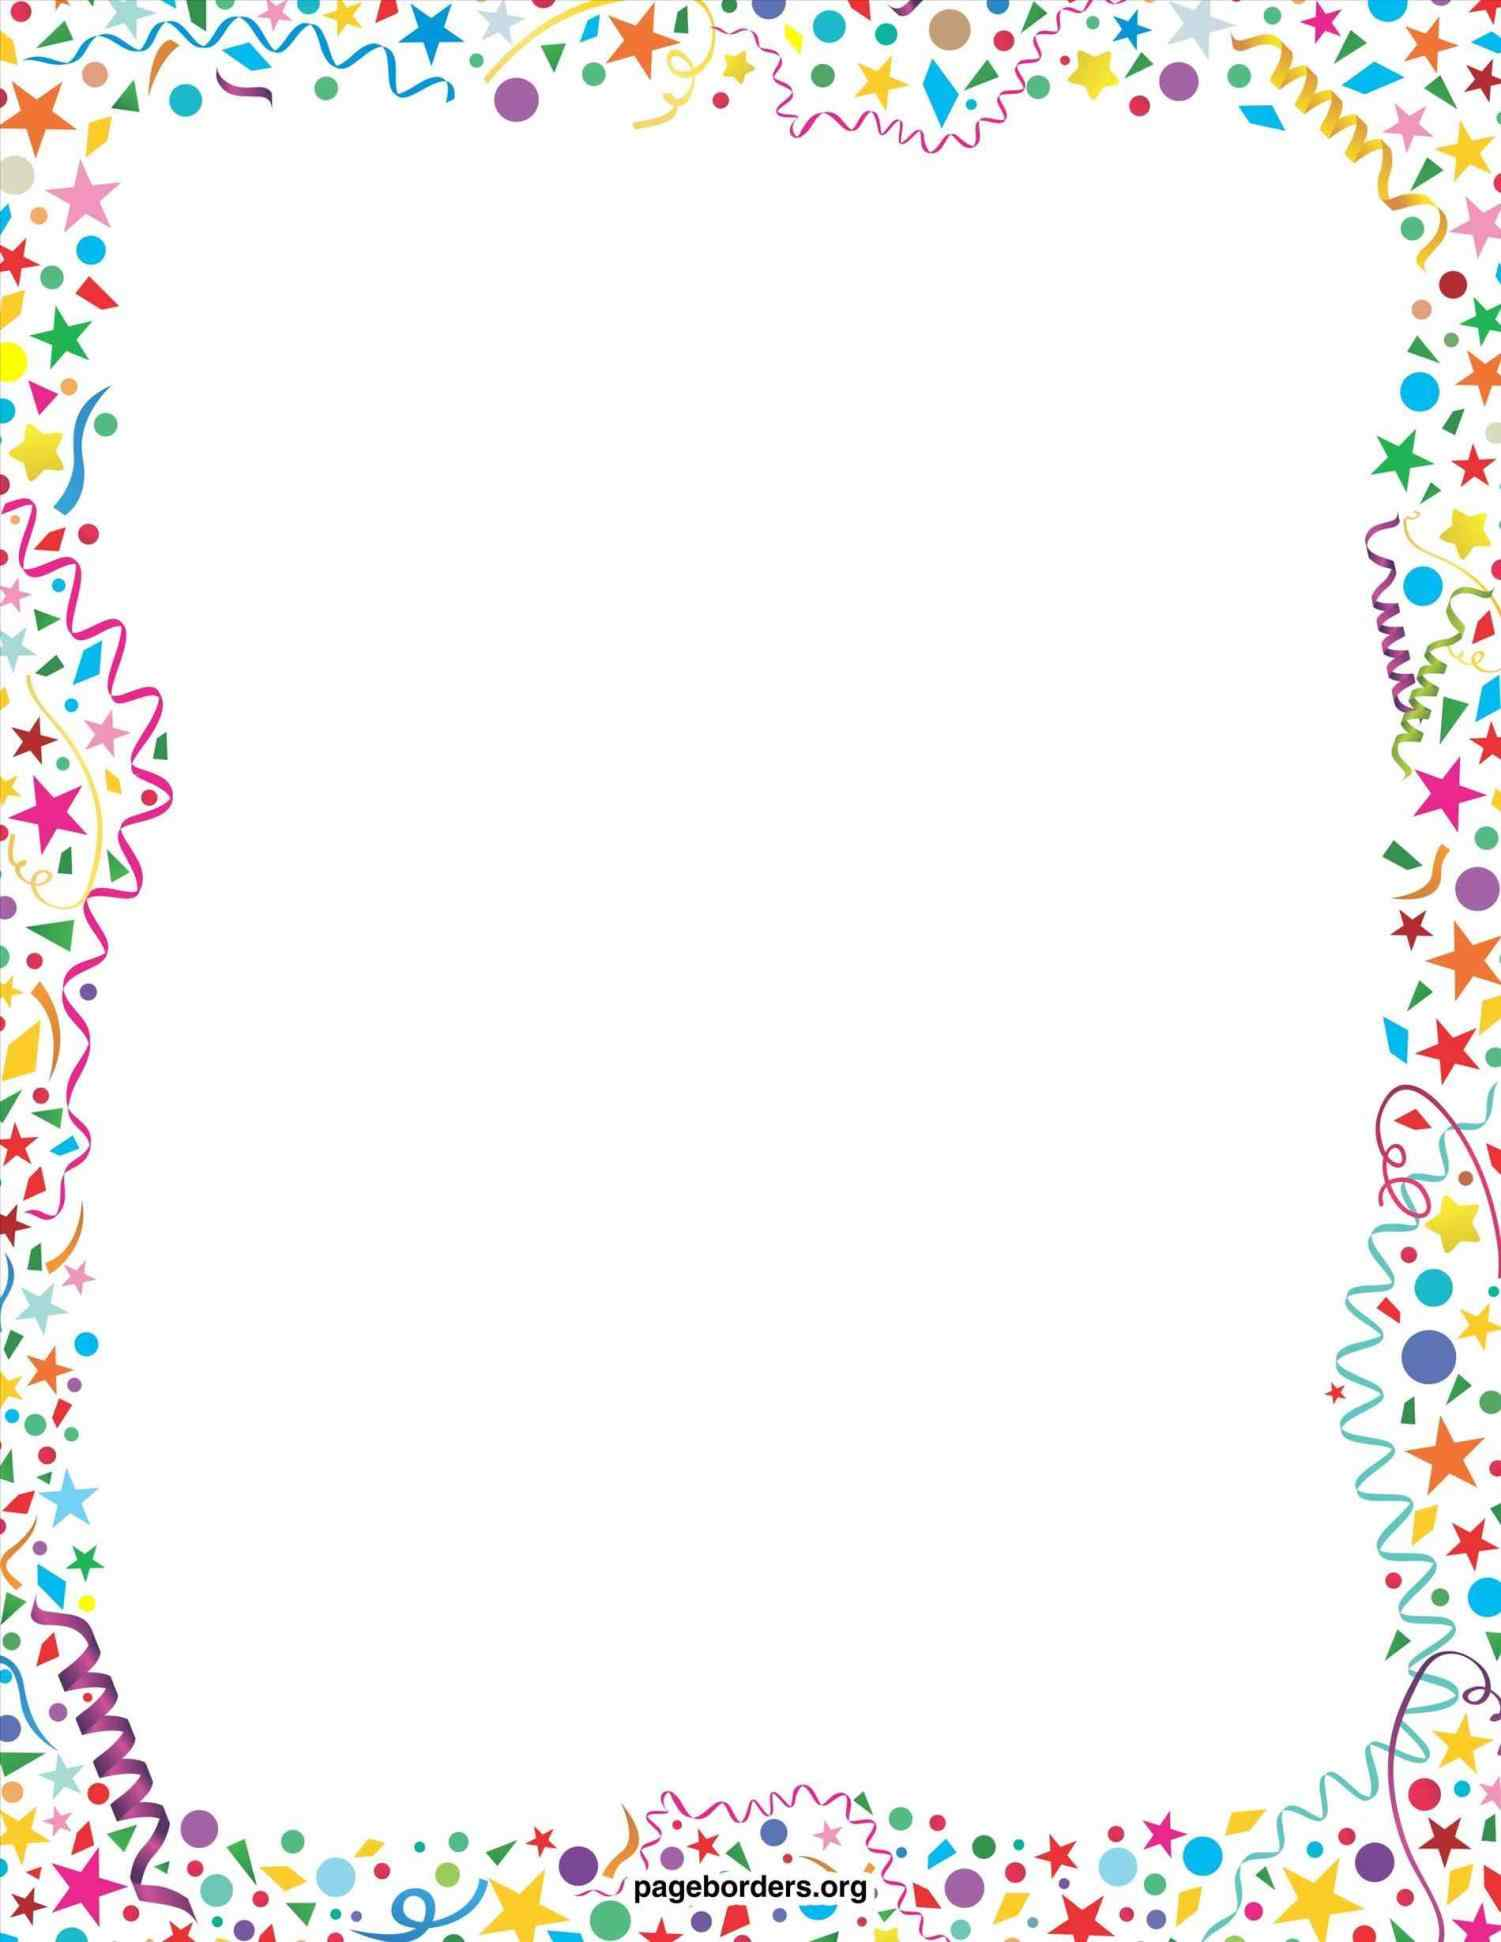 Chick clipart border. Baby shower borders free